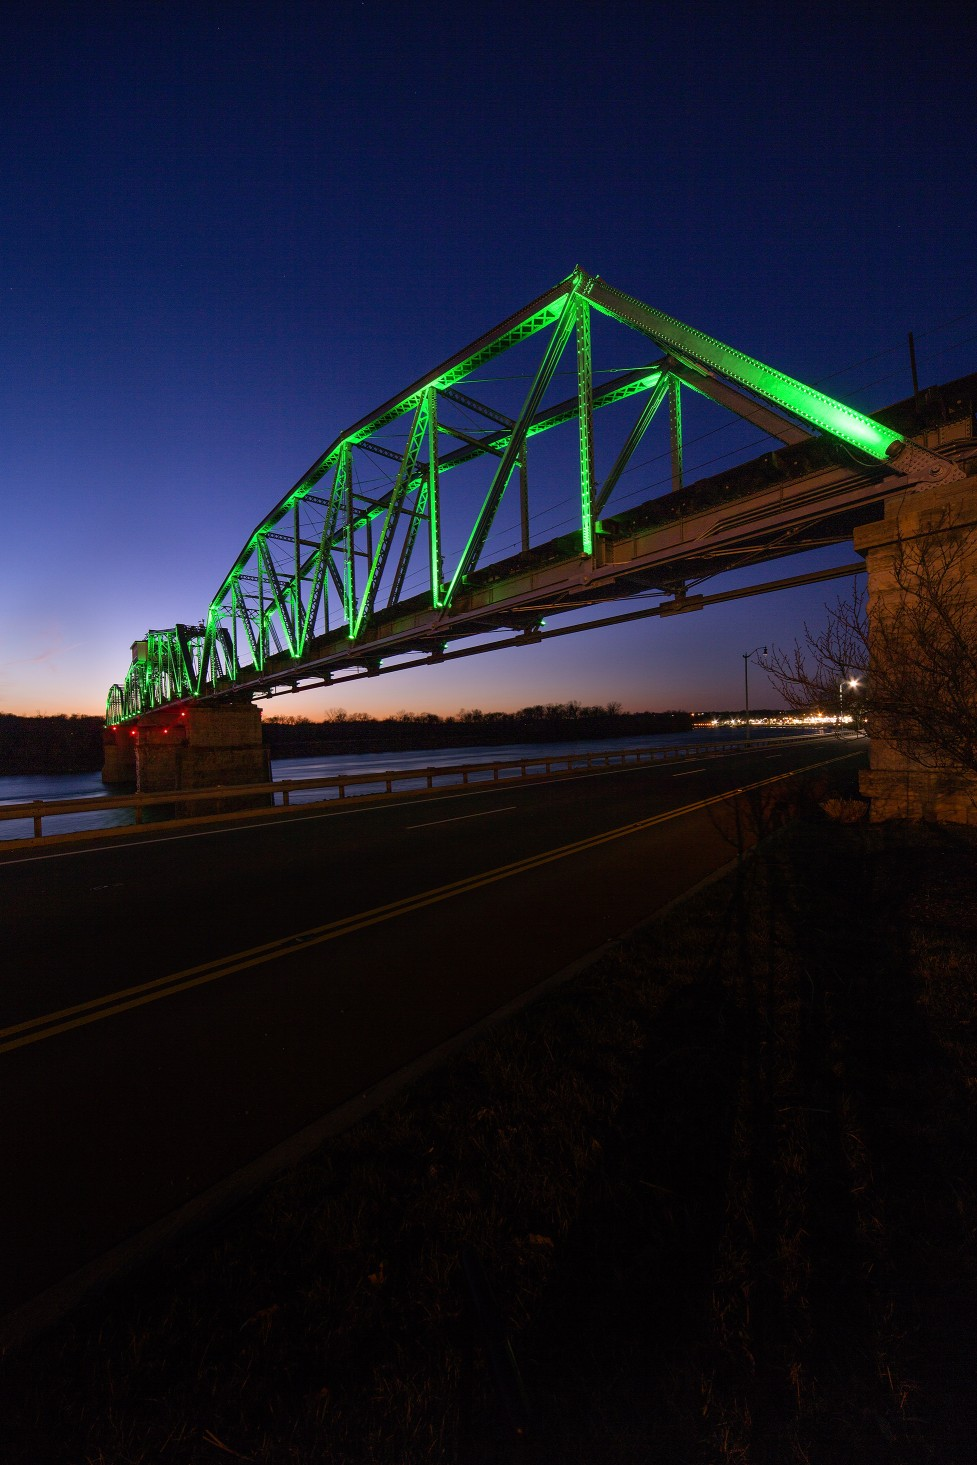 The new lighting system makes a previously rusting bridge come alive, and has brought attention to the area and the city of Clarksville.